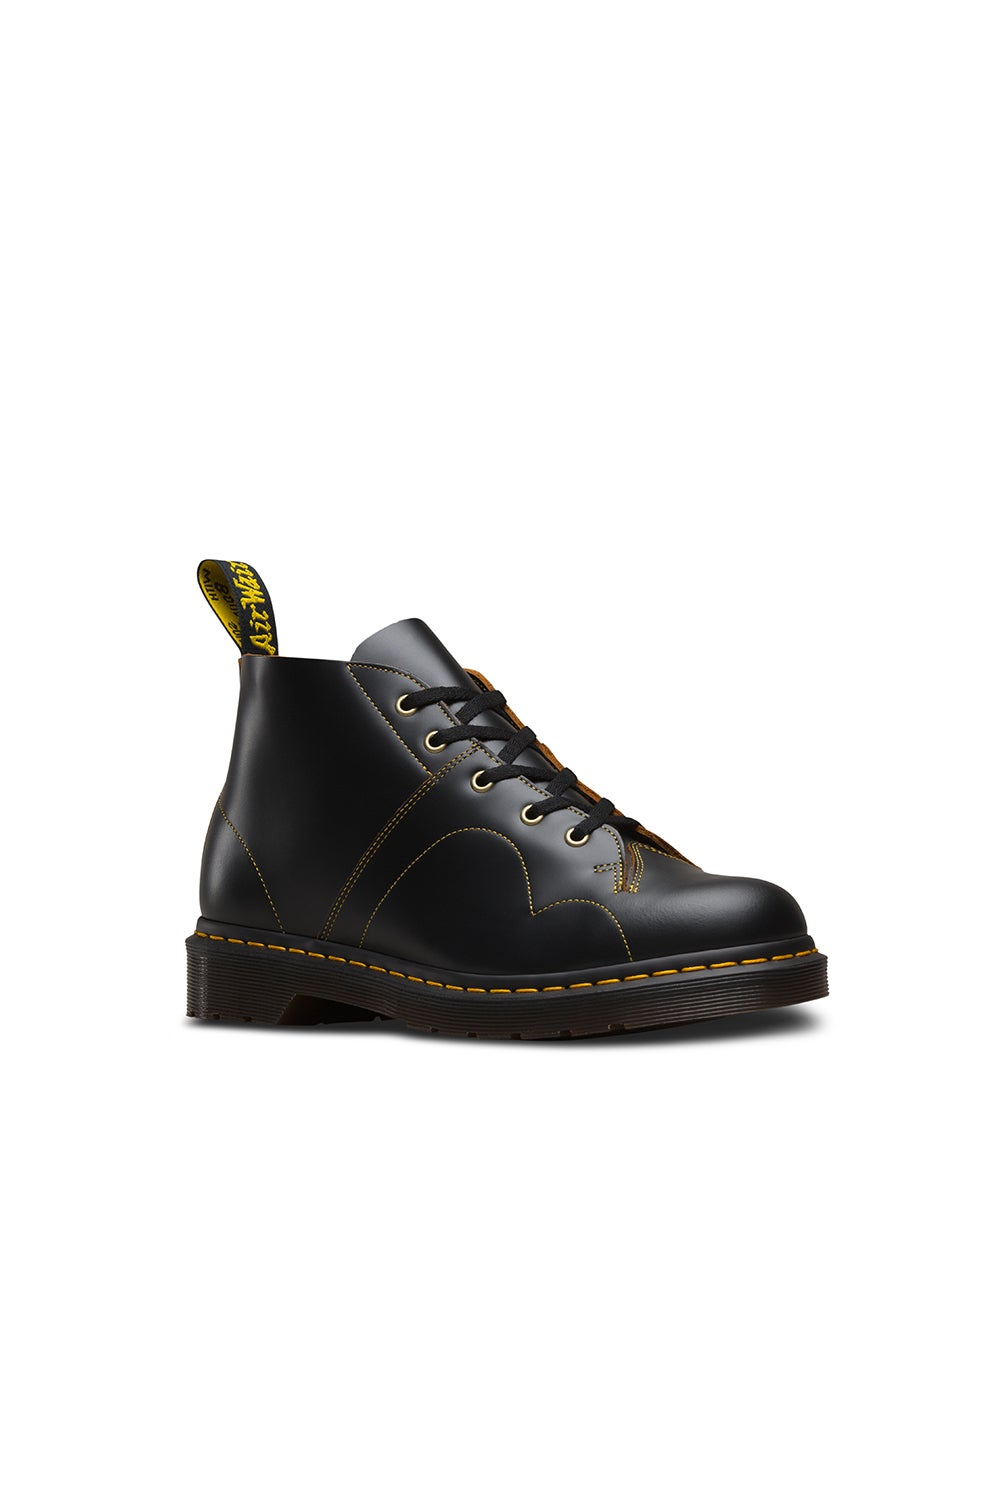 Dr. Martens Church Monkey Boot Black